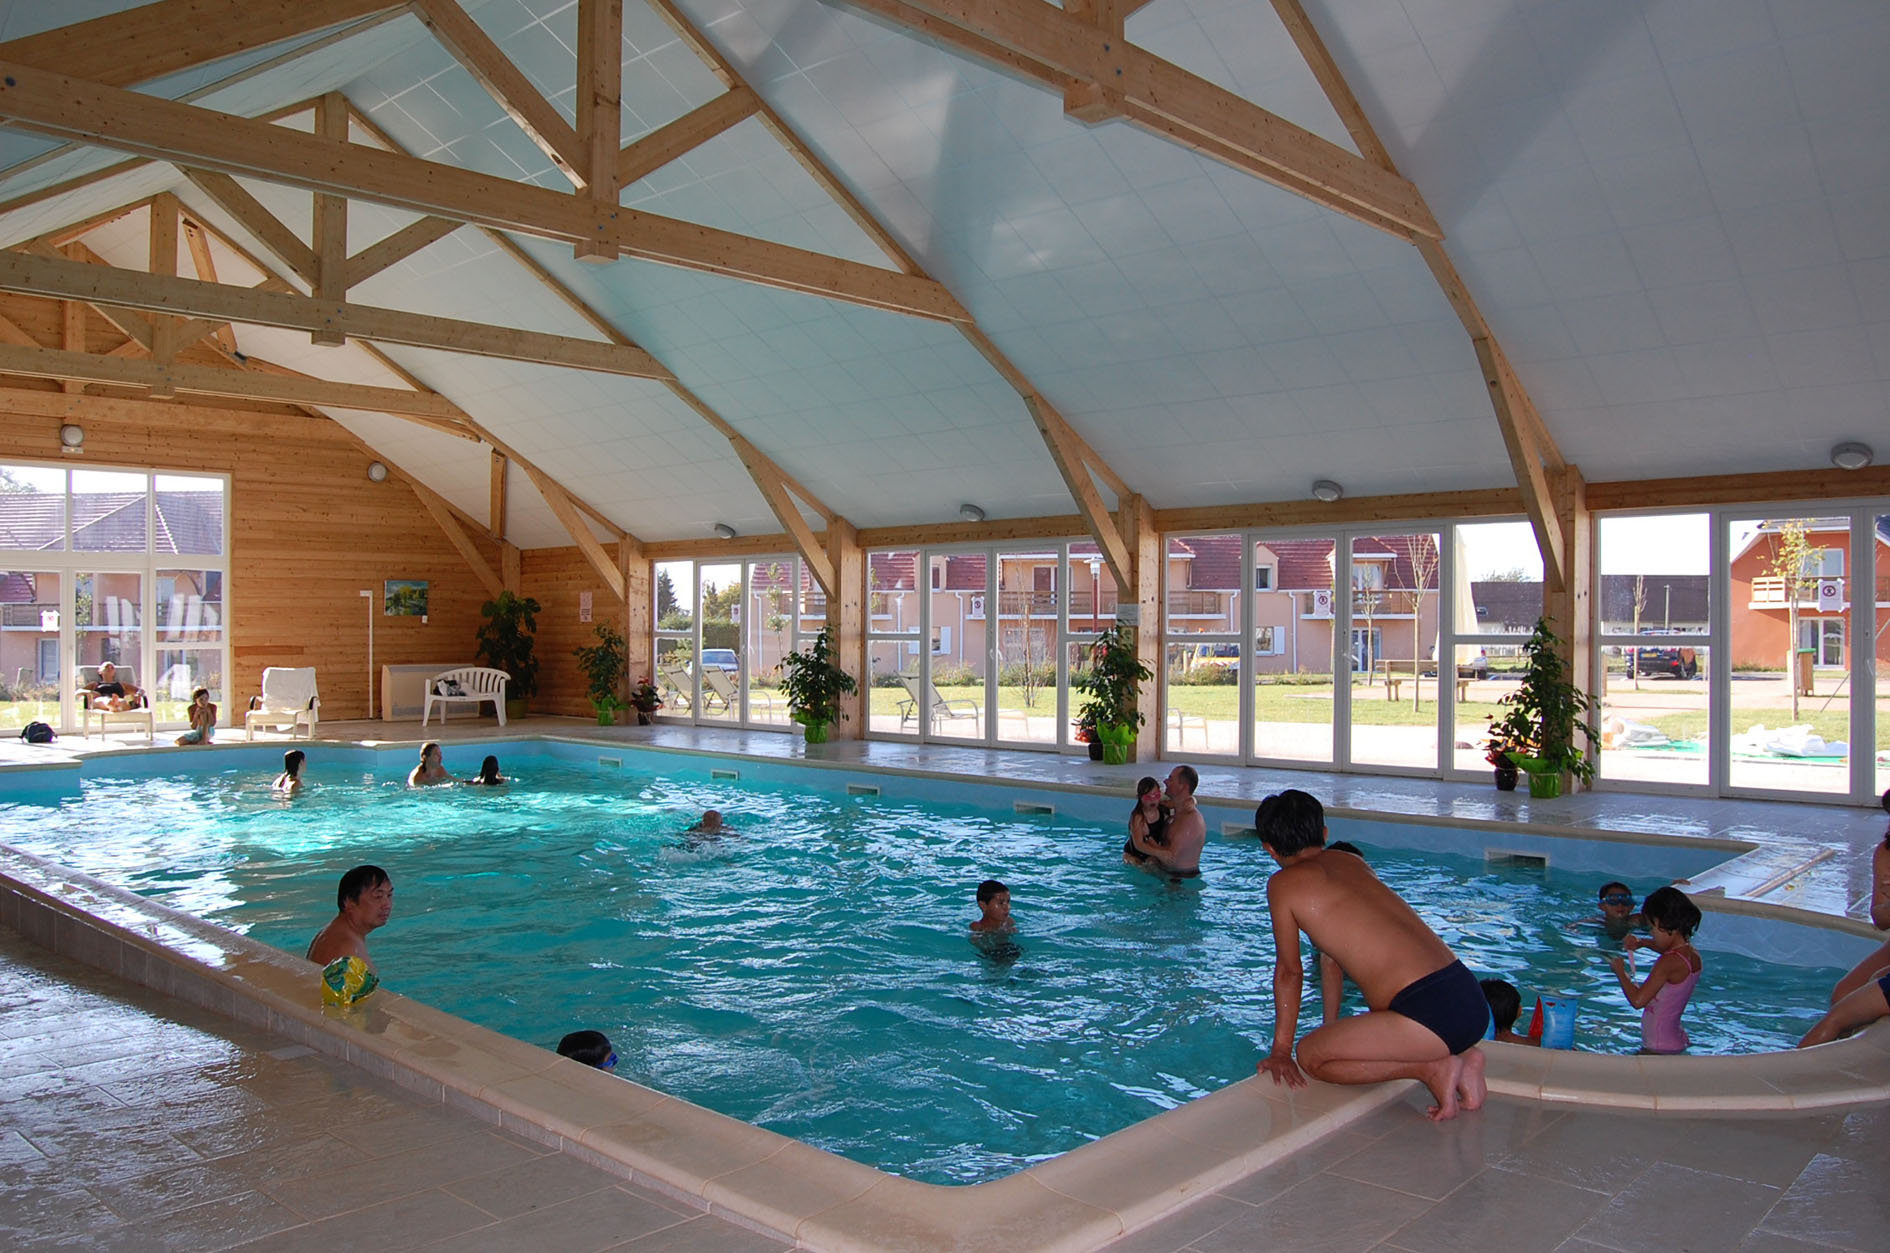 Heated pool, Les portes d'Honfleur Goélia holiday complex